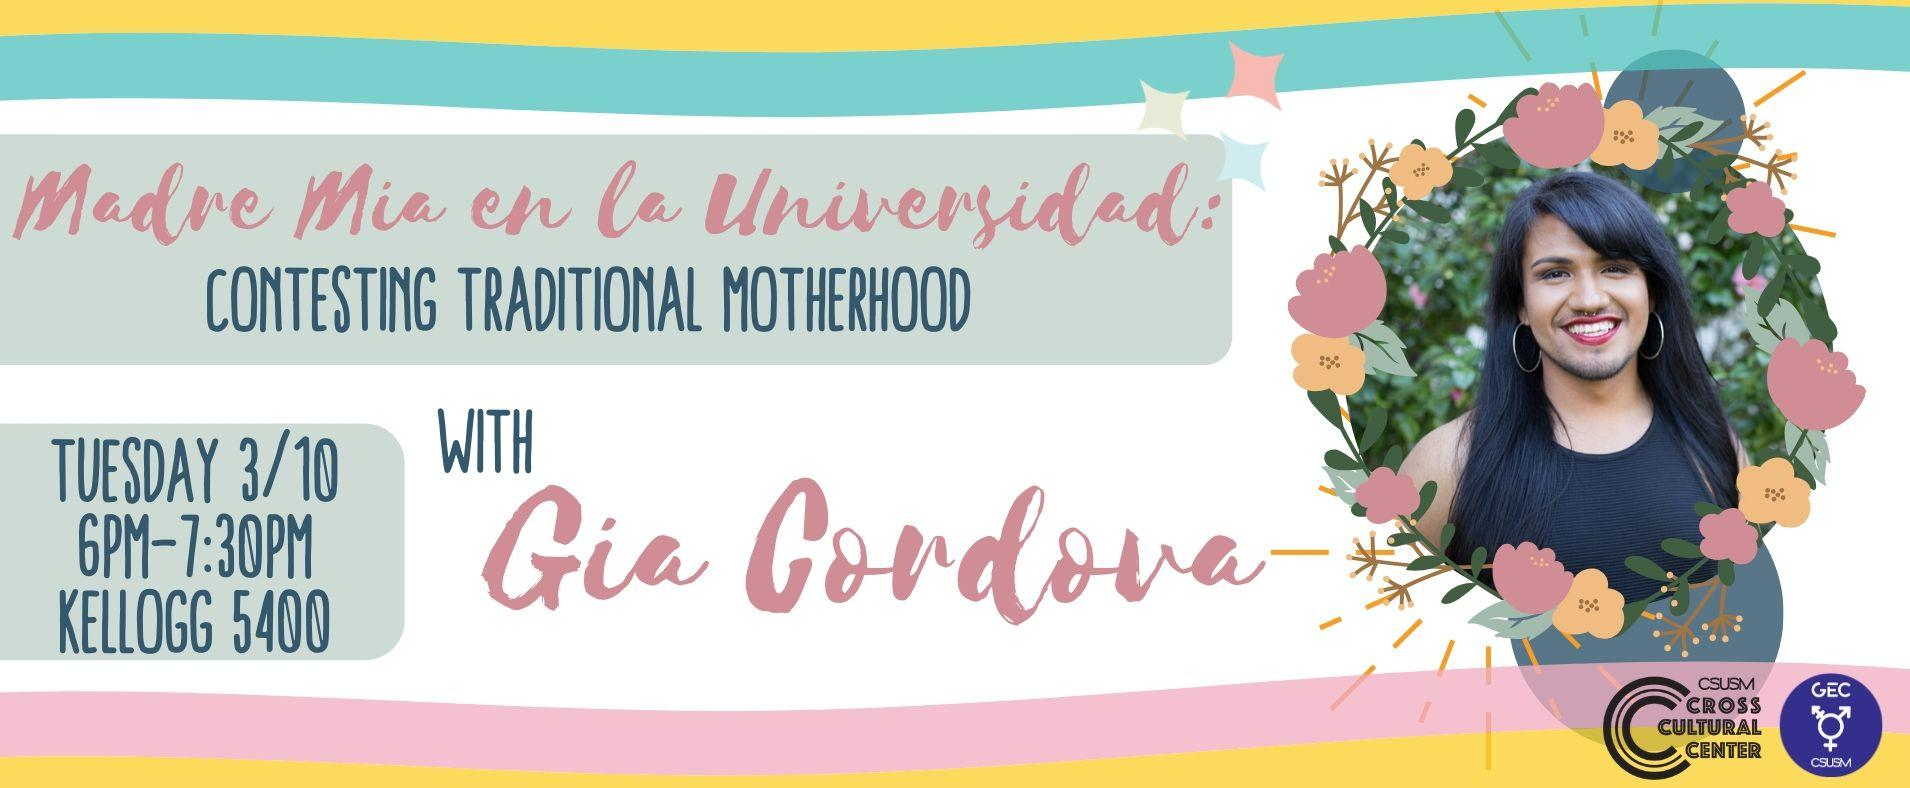 Activist Lab - Madre Mia en la Universidad: Contesting Traditional Motherhood w/ Gia Cordova - Tuesday March 10, 2020 - 6PM to 8:30PM -  Kellogg 5400